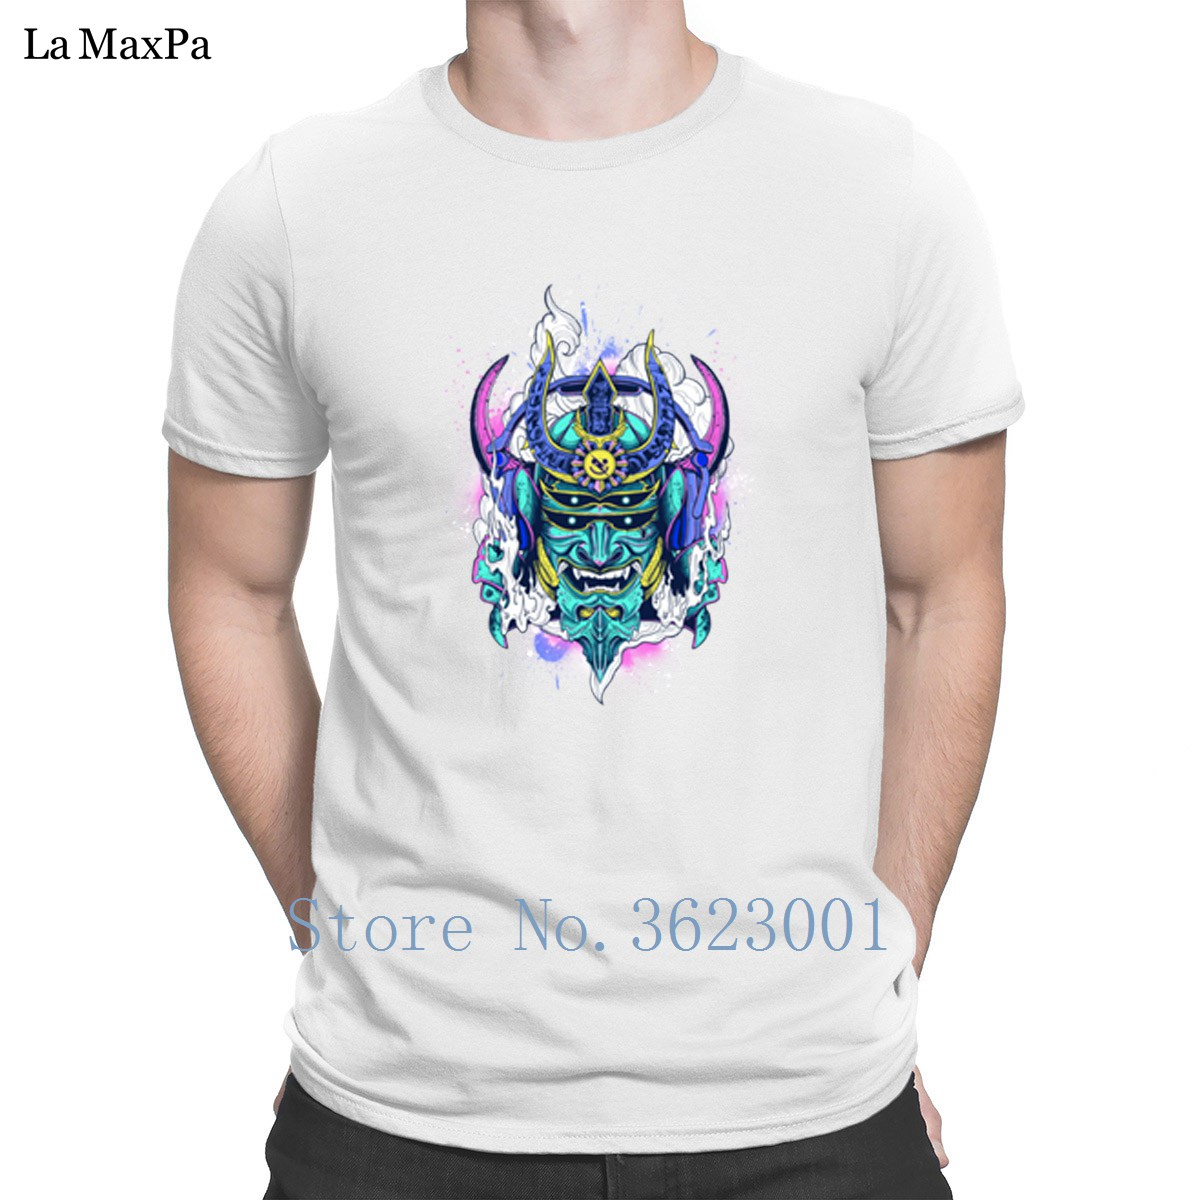 Create Letters Tshirt Man Romantic Of Electronic Samurai Mens T-Shirt Popular Summer T Shirt Great Tee Shirt Man Fit Size S-3xl